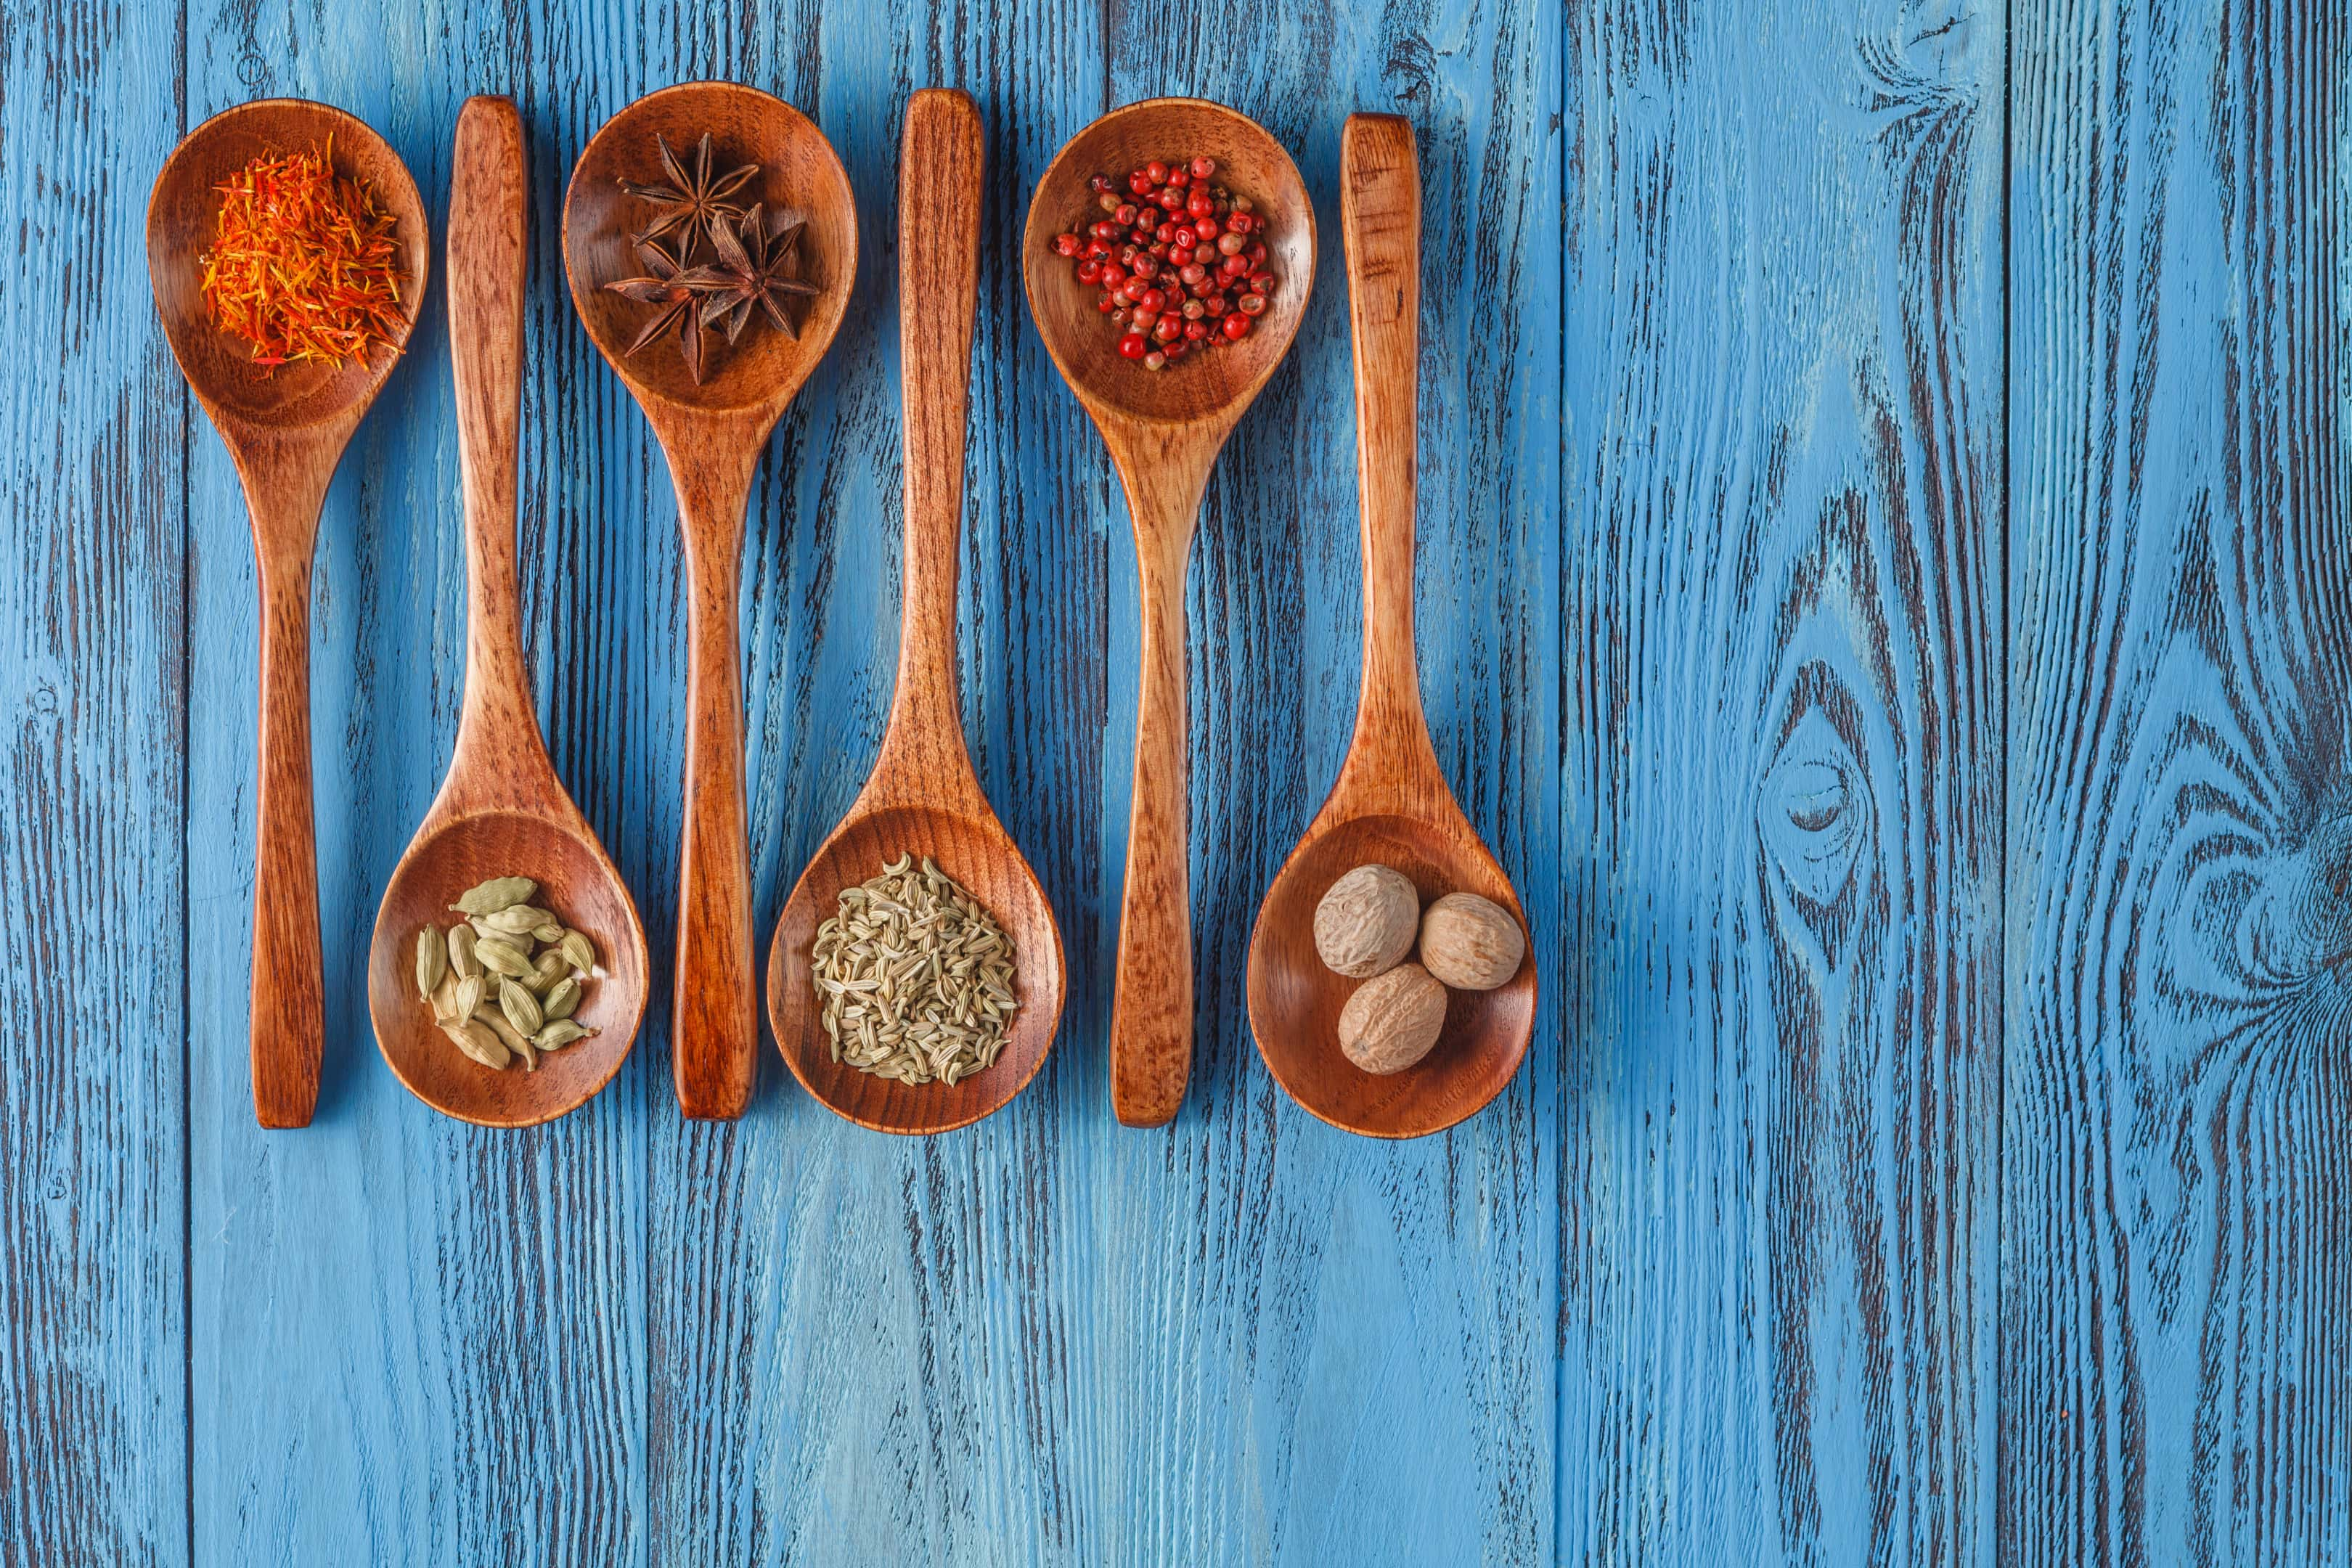 Various spice herbs in wooden spoons on wooden table